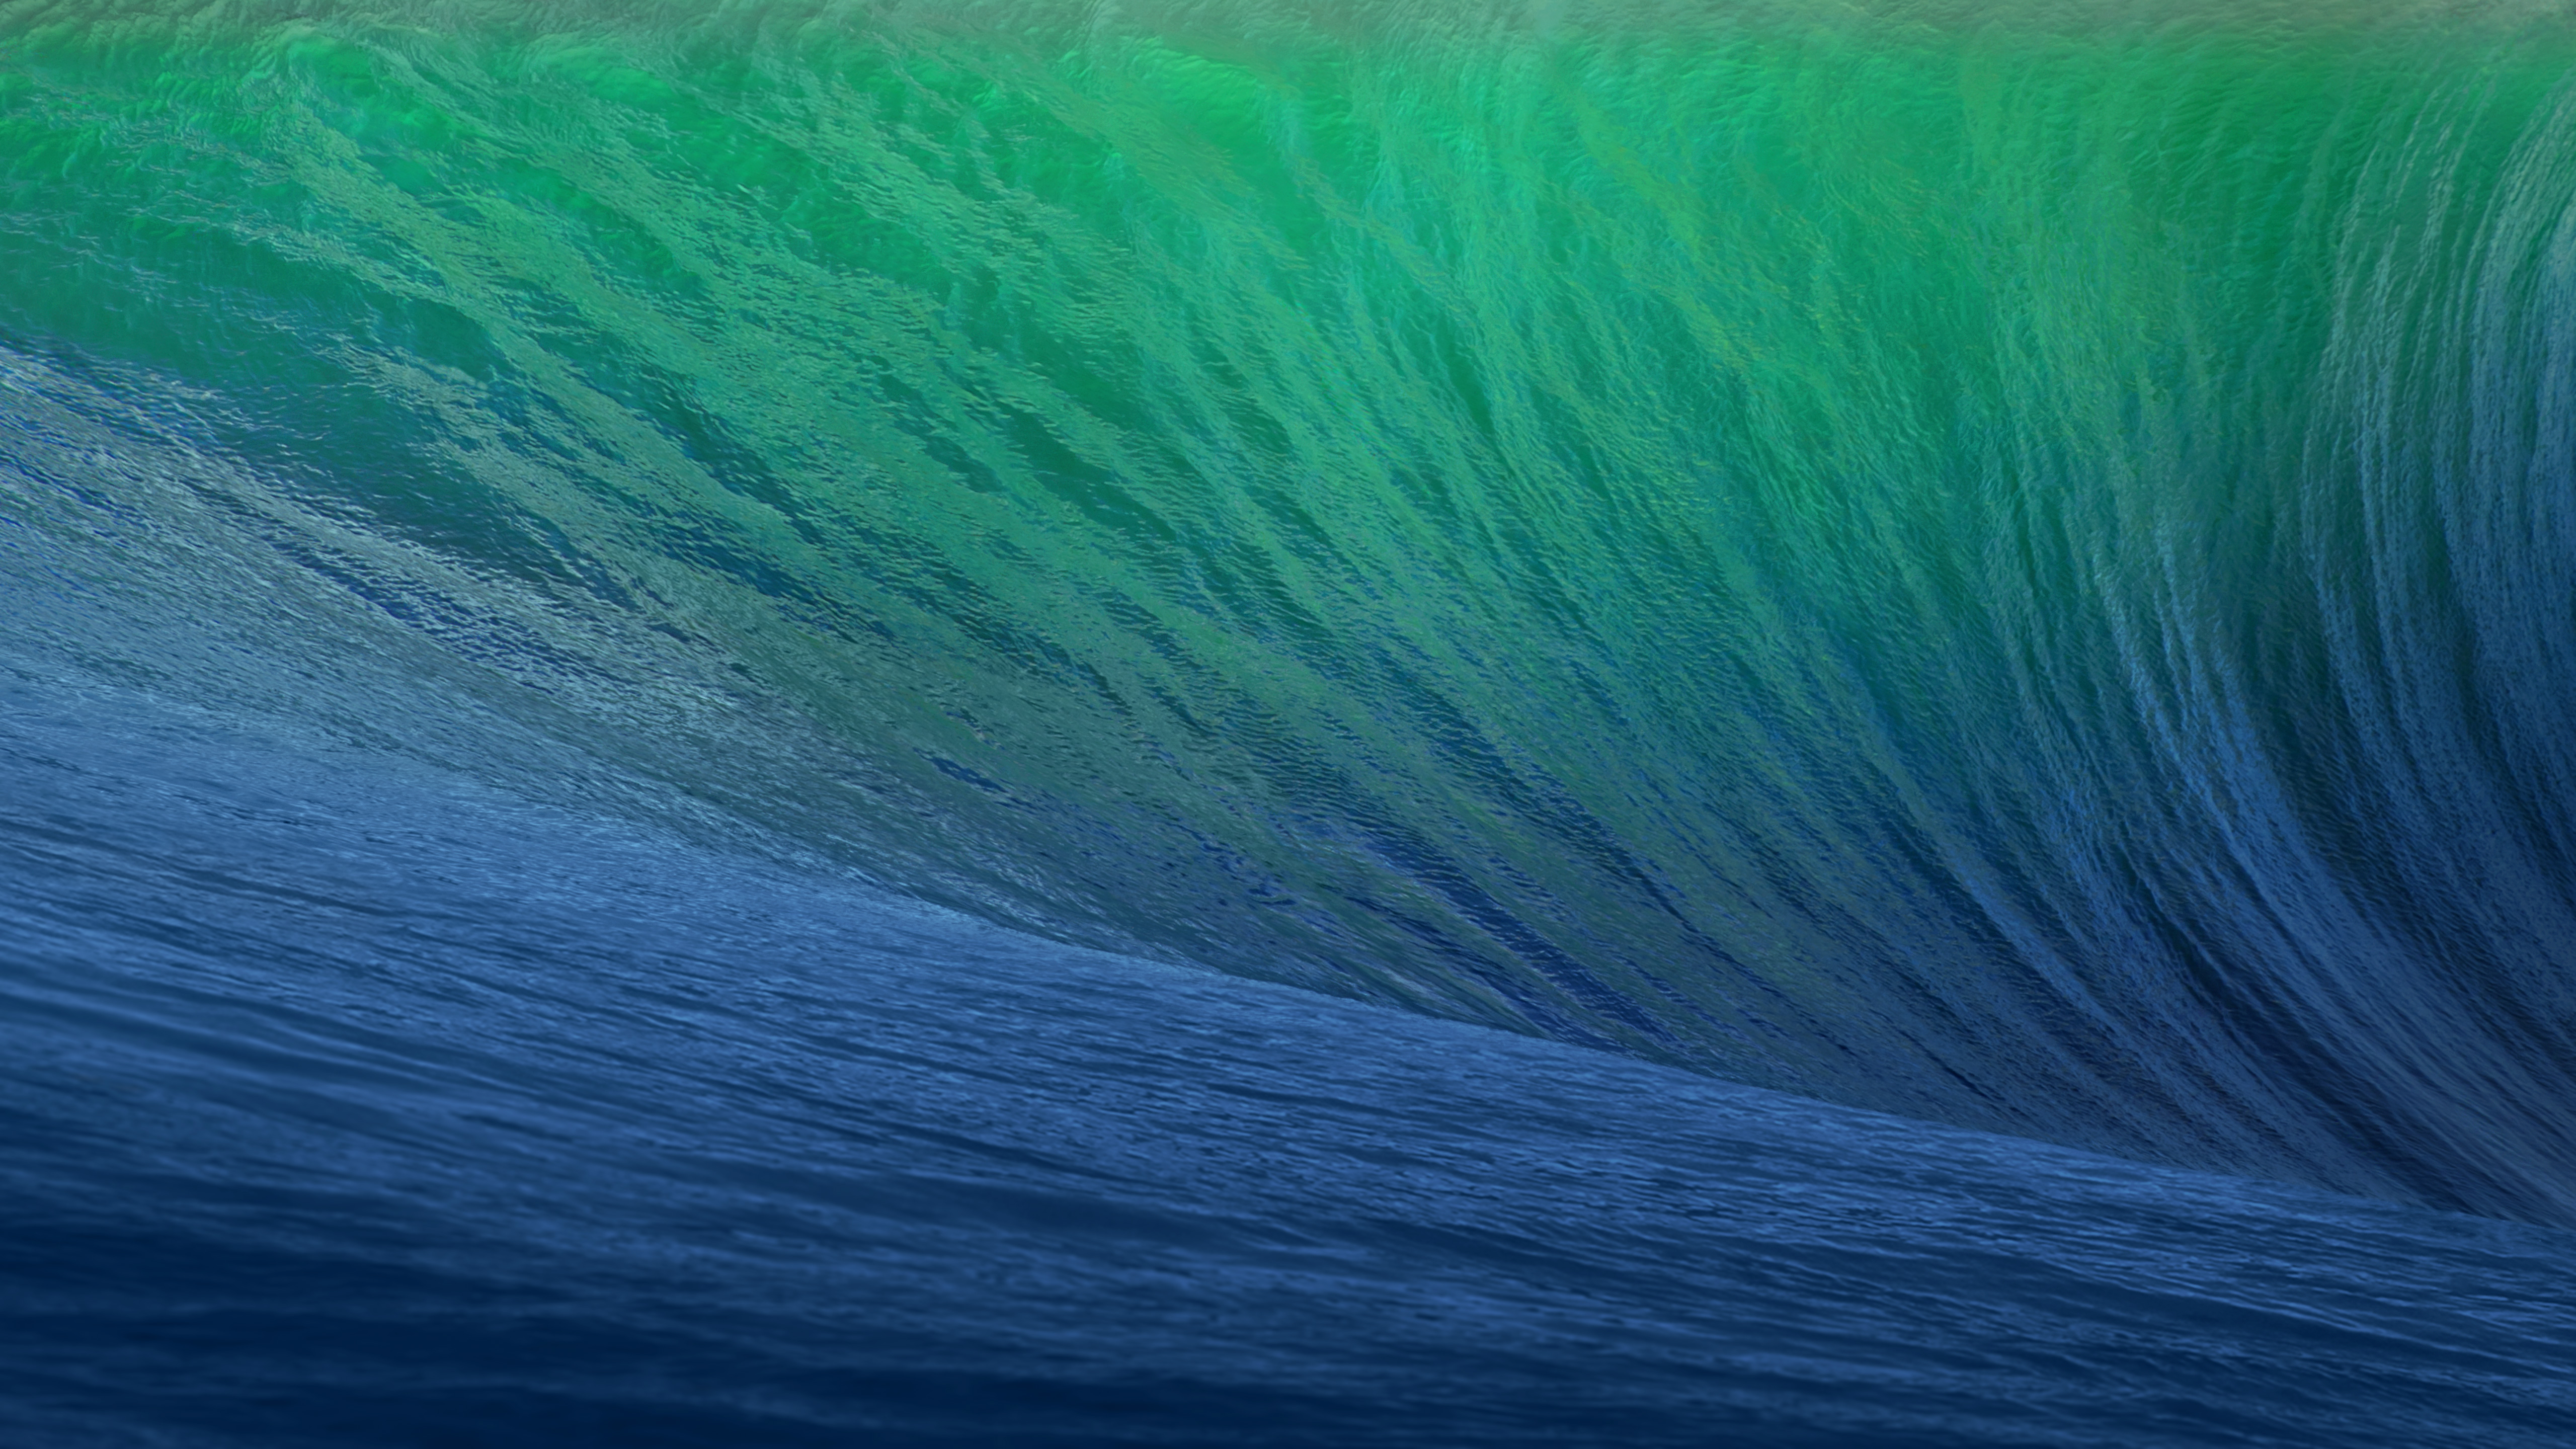 Gallery Eight beautiful new OS X Mavericks wallpapers 9to5Mac 5120x2880